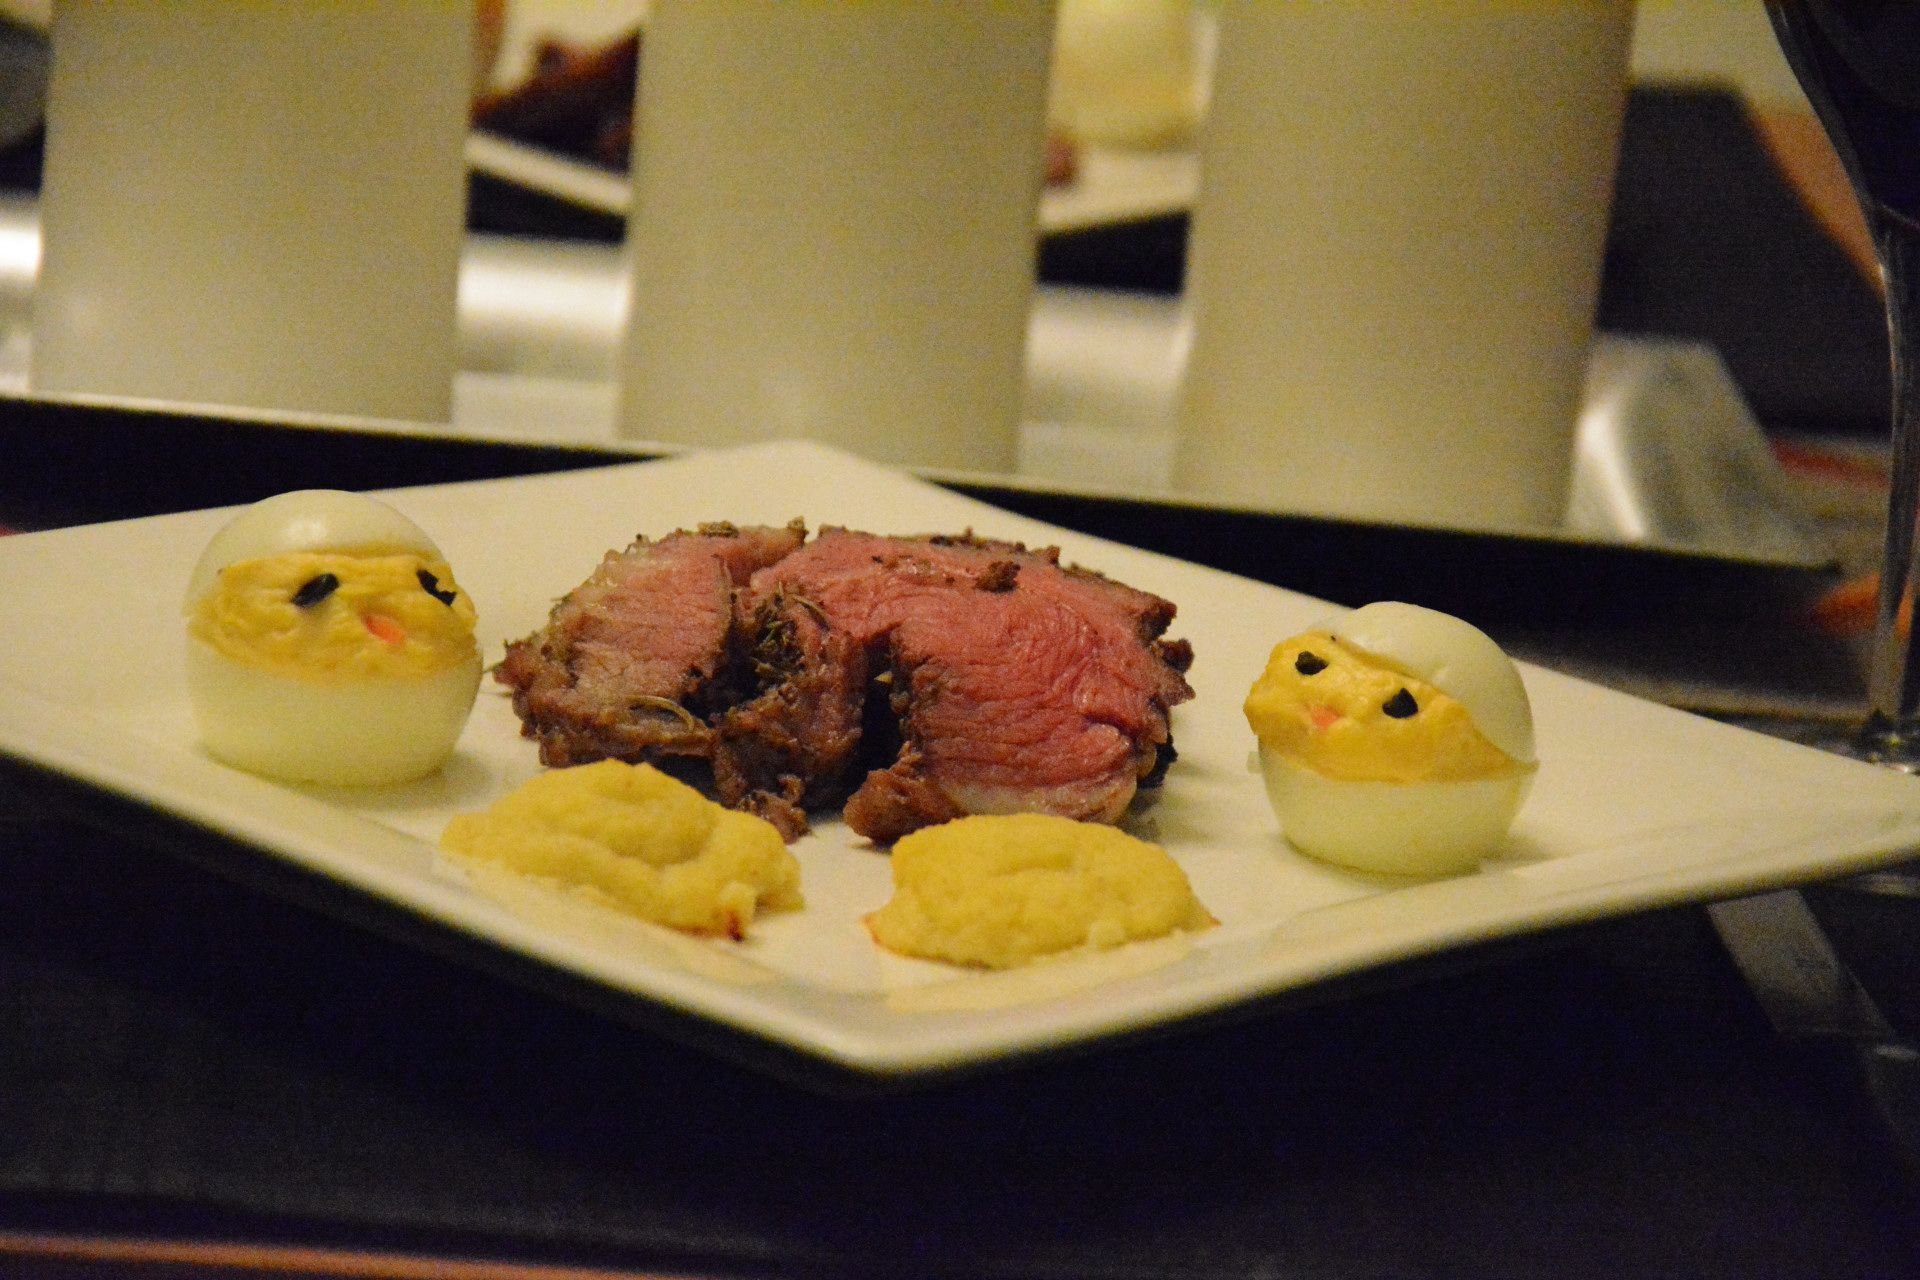 Roasted Leg of Lamb - Looking for a special meal? Roast a boneless leg of lamb and serve it with au jus! I served this for Easter and it was perfect!!